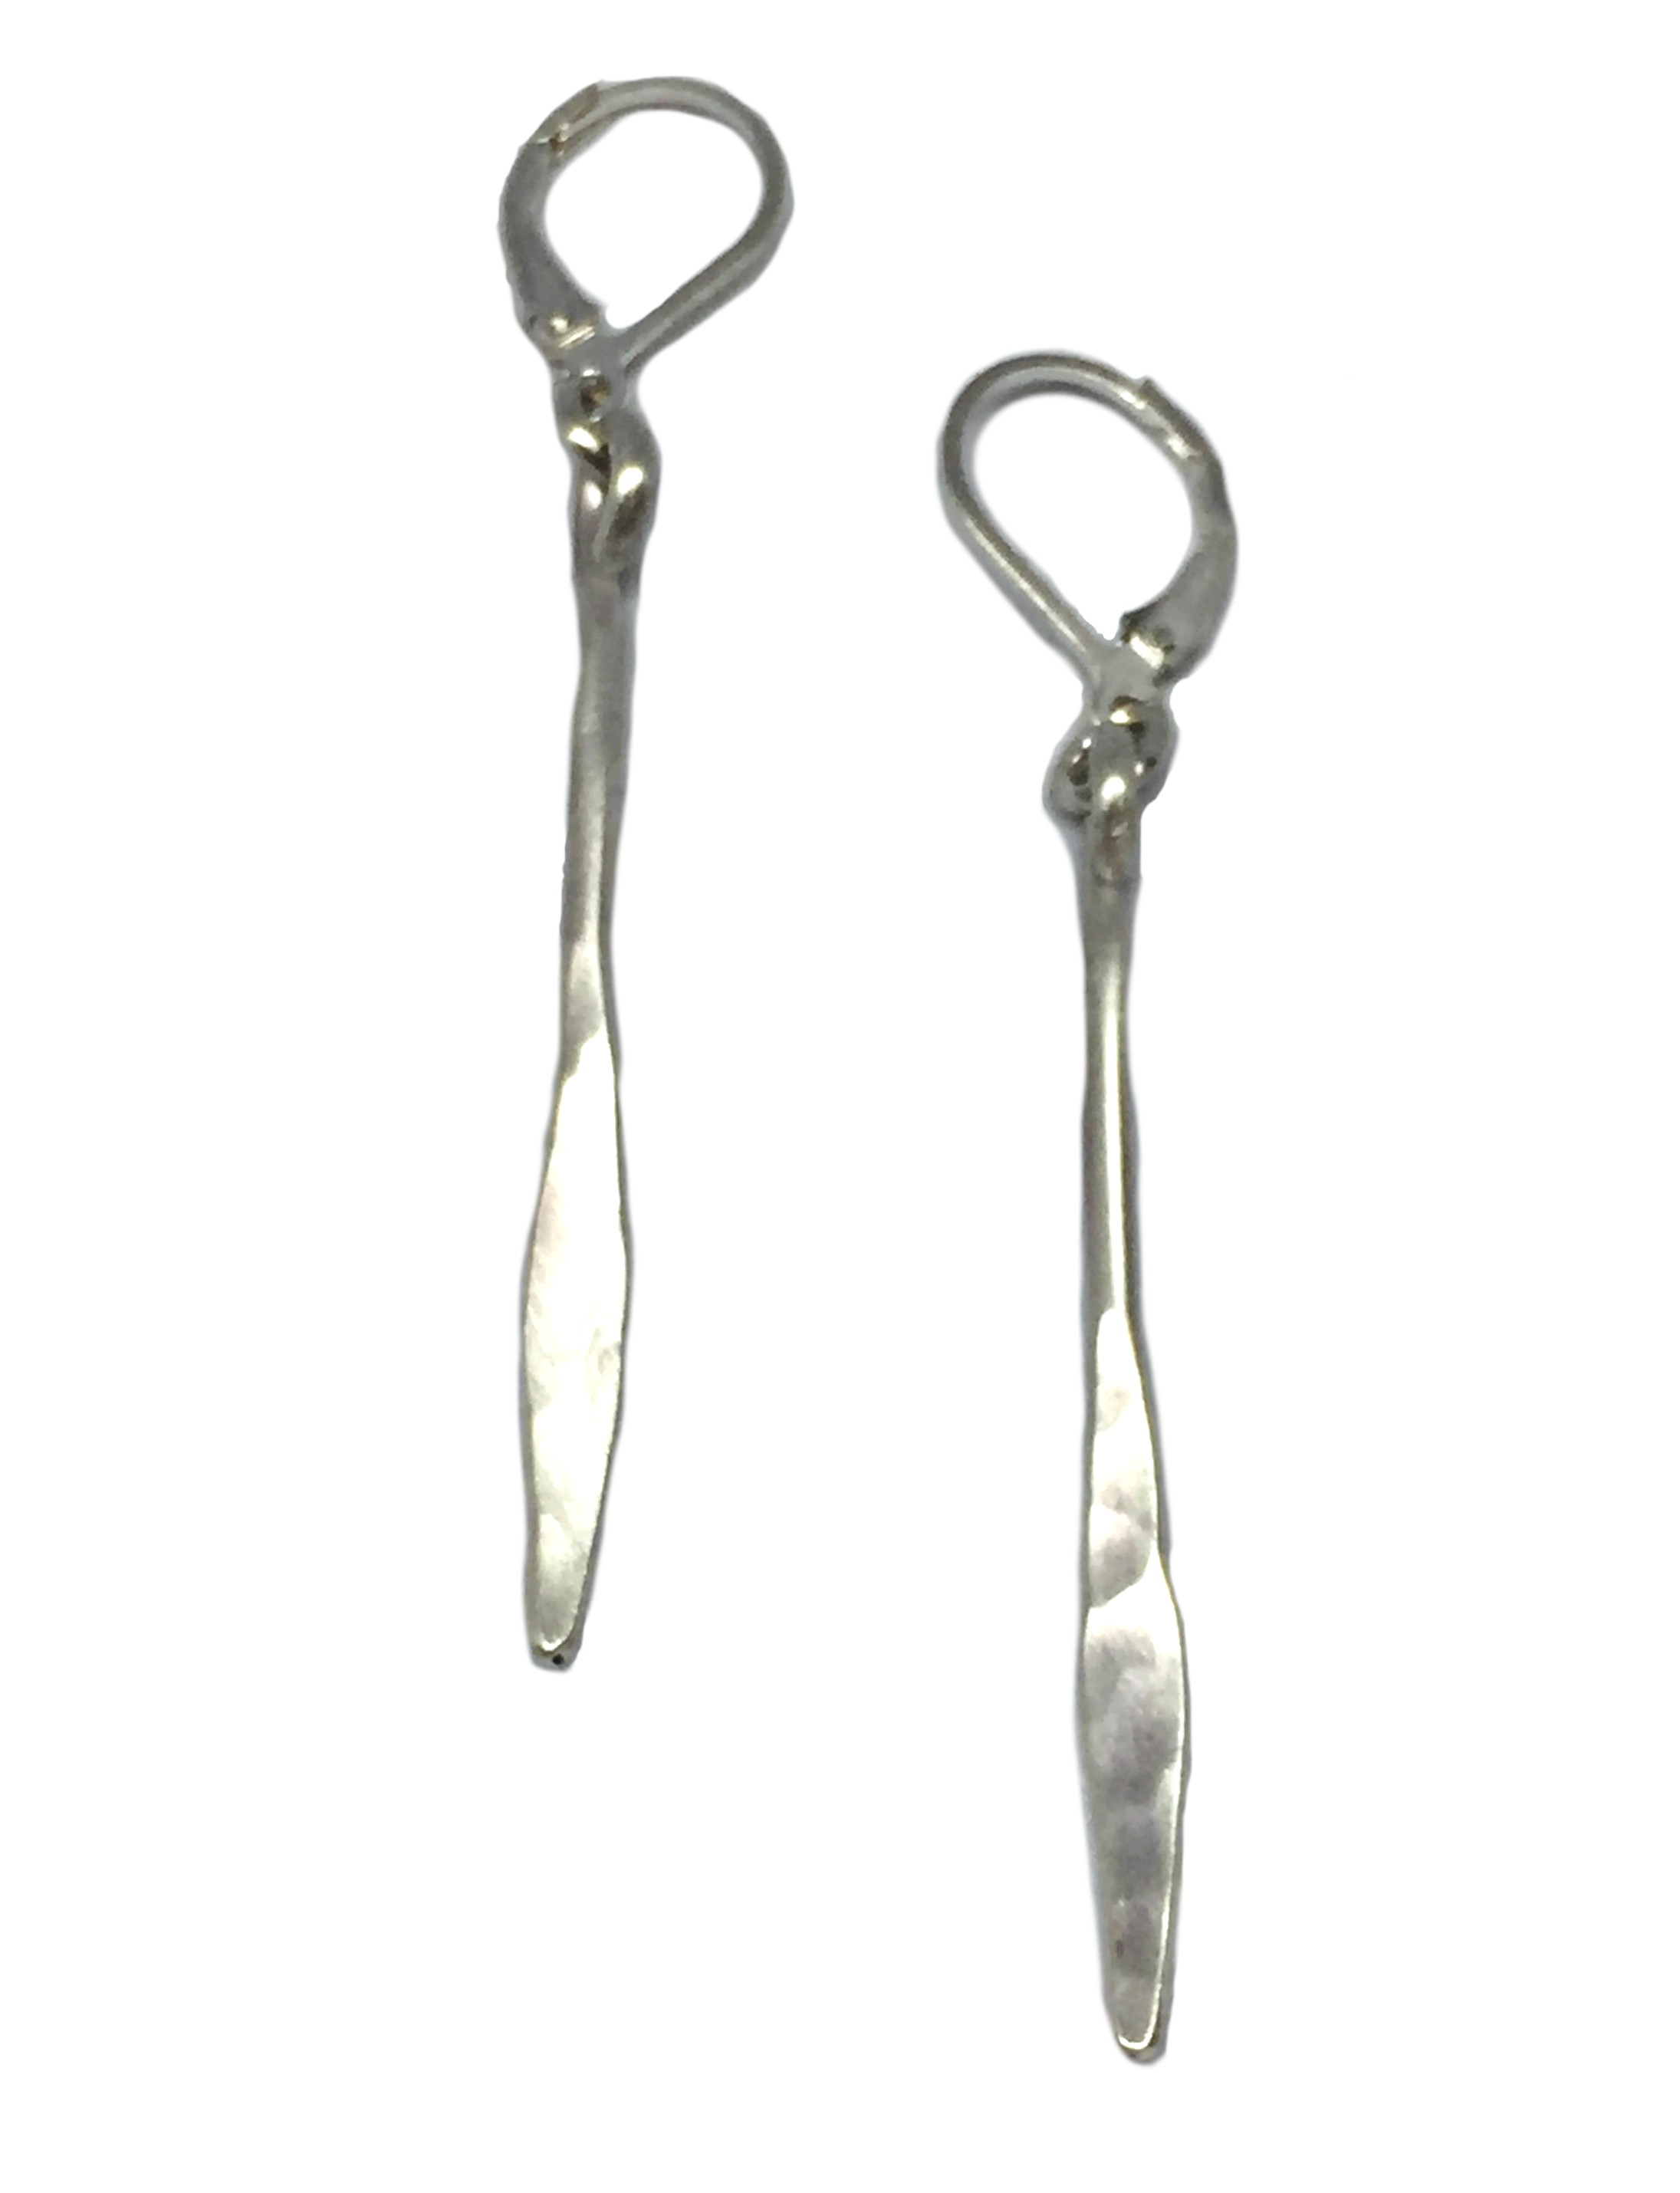 Sterling silver earrings by Karyn Chopik | Effusion Art Gallery + Cast Glass Studio, Invermere BC